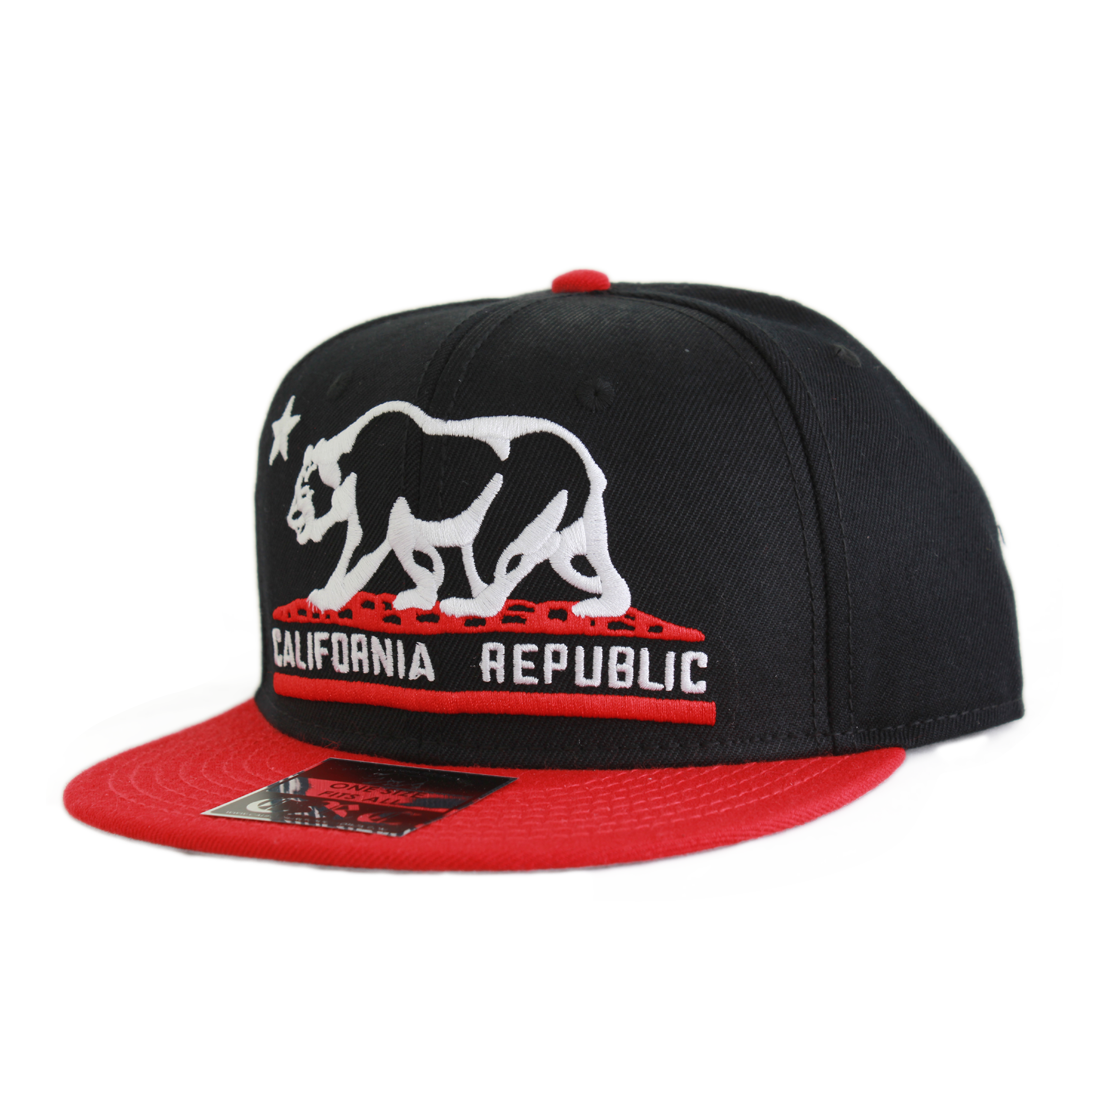 California Republic Embroidered Bear Flag Flat Bill Snapback Hat - Black/Red